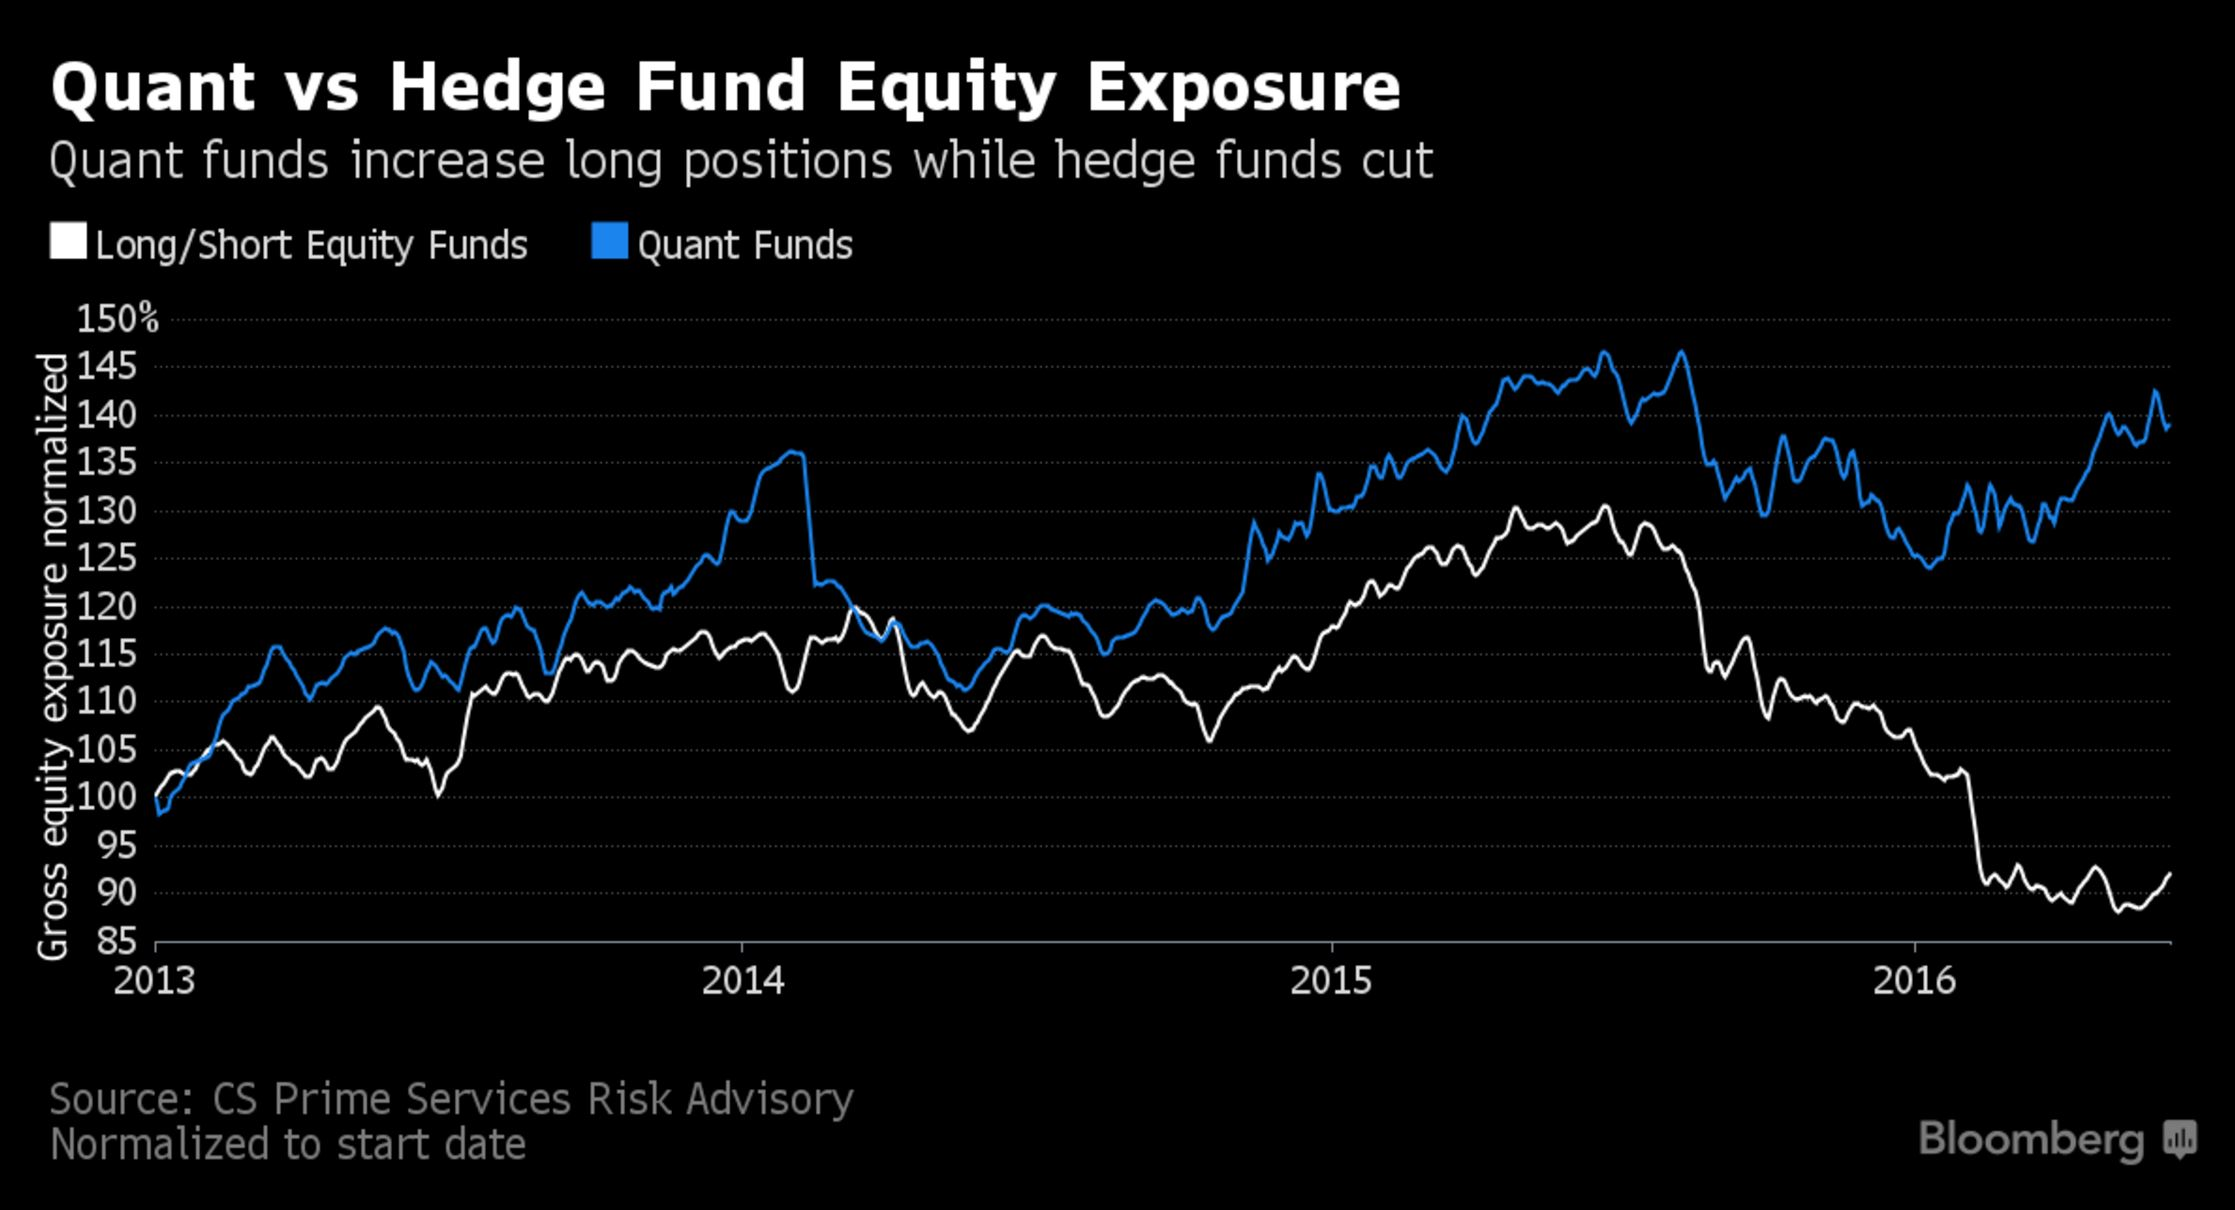 hedge equities , it is an effective method for reducing volatility and risk in a portfolio there are other options for investors who hold individual equity positions and hedge.